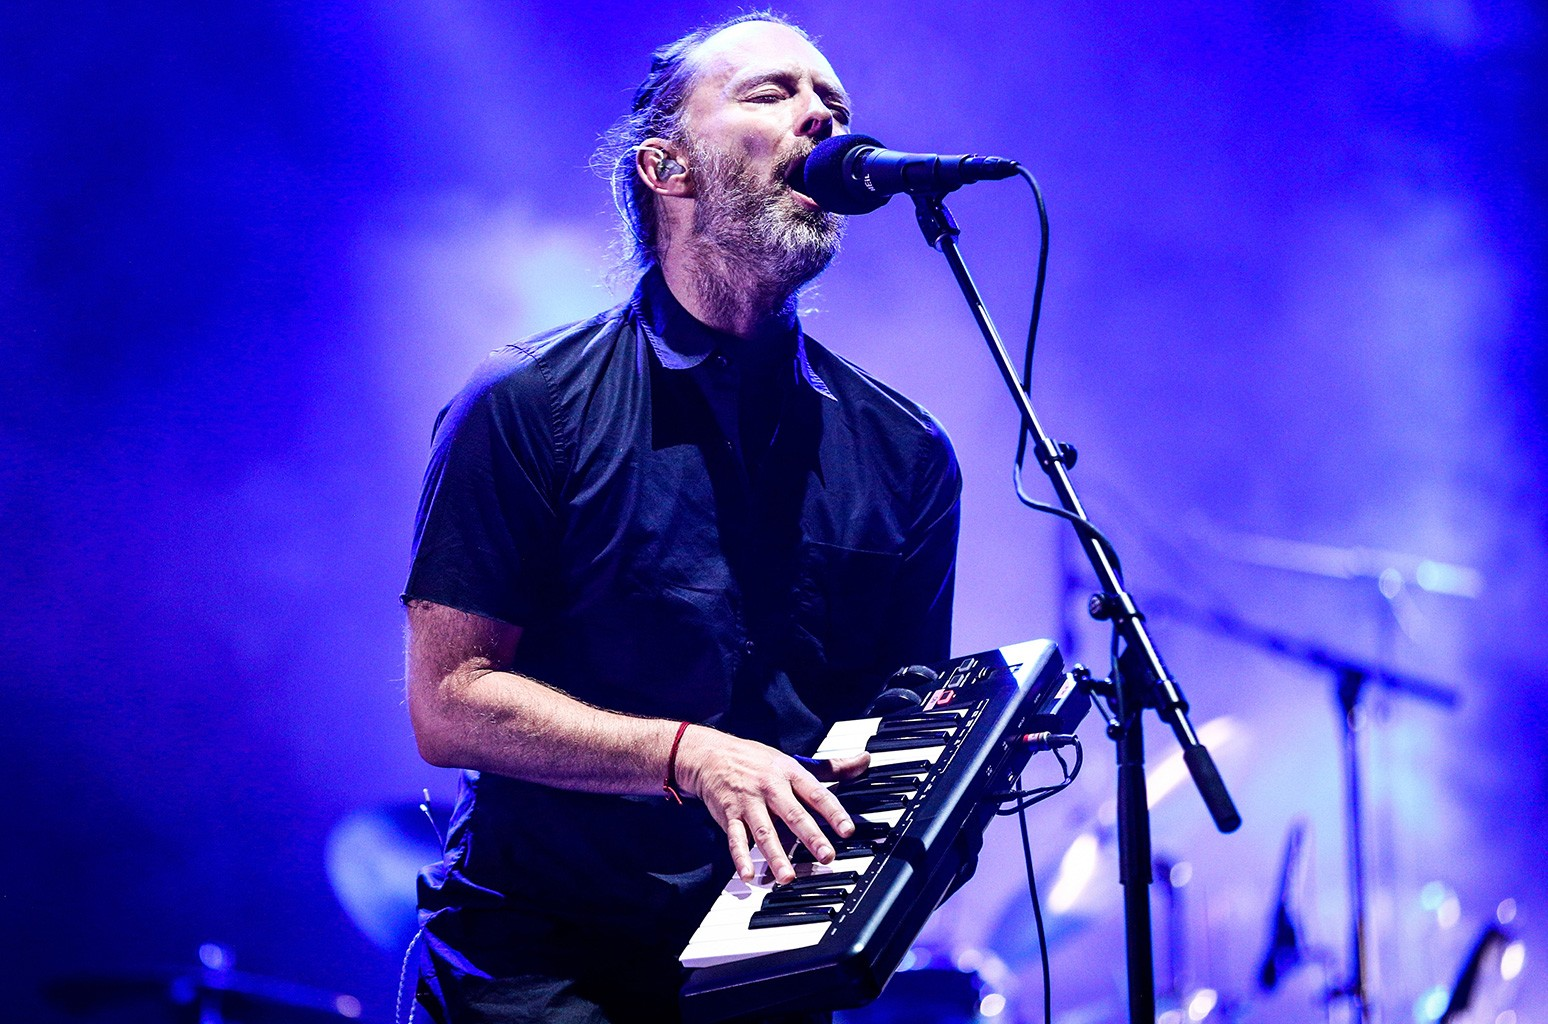 Thom Yorke of Radiohead performs on the Coachella Stage during day 1 of the 2017 Coachella Valley Music & Arts Festival (Weekend 2) at the Empire Polo Club on April 21, 2017 in Indio, Calif.